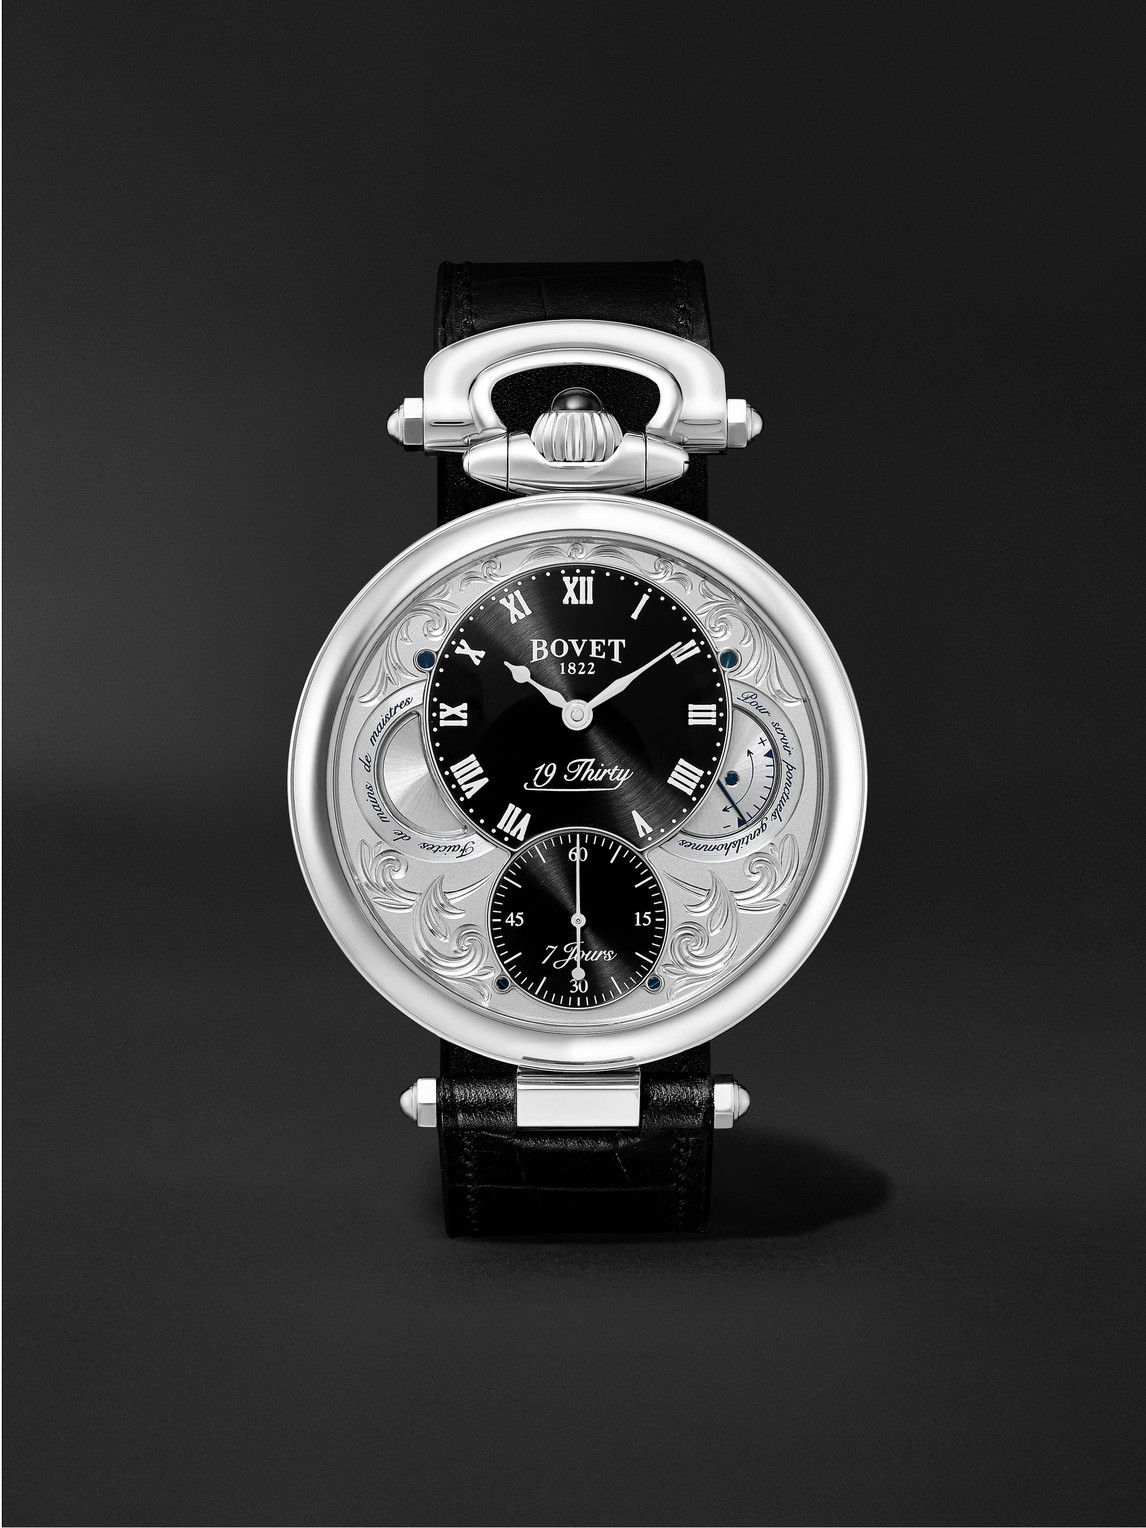 Bovet 19thirty Fleurier Hand-wound 42mm Stainless Steel And Croc-effect Leather Watch, Ref. No. Nts0016 In Silver